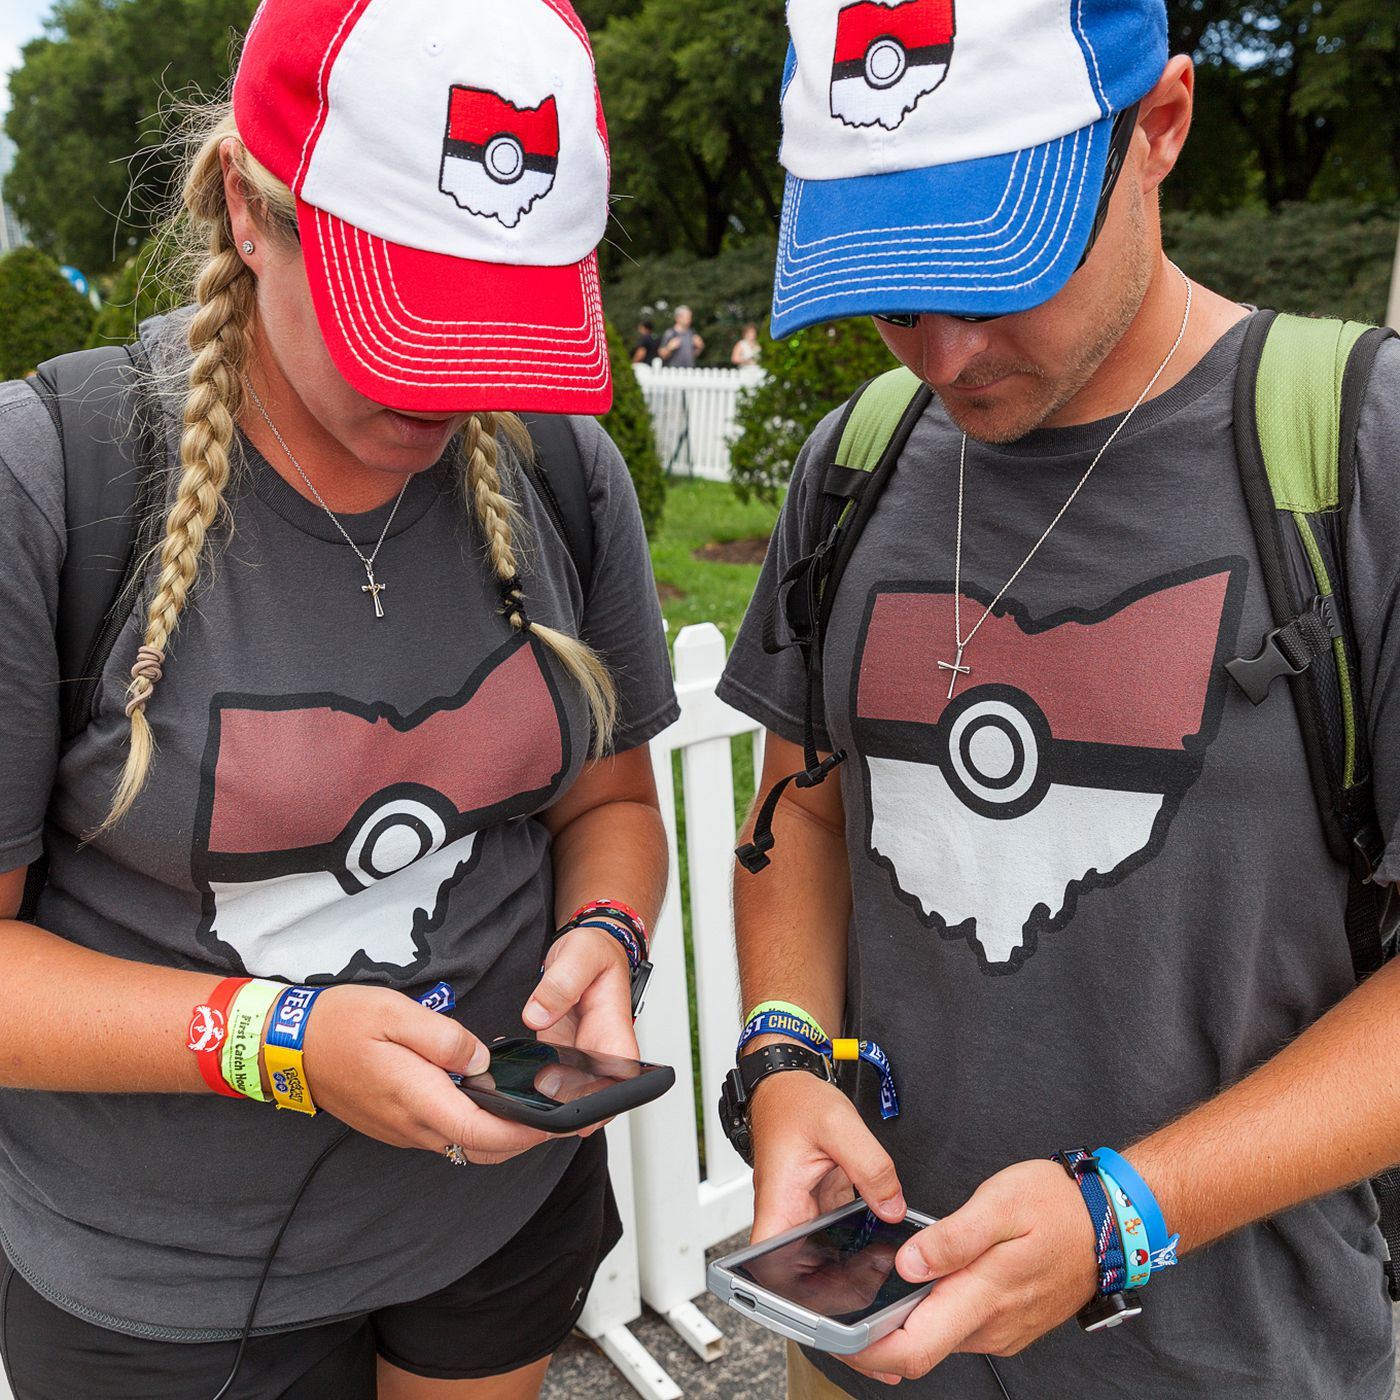 I went to Pokémon Go Fest, and it was a disaster - The Verge